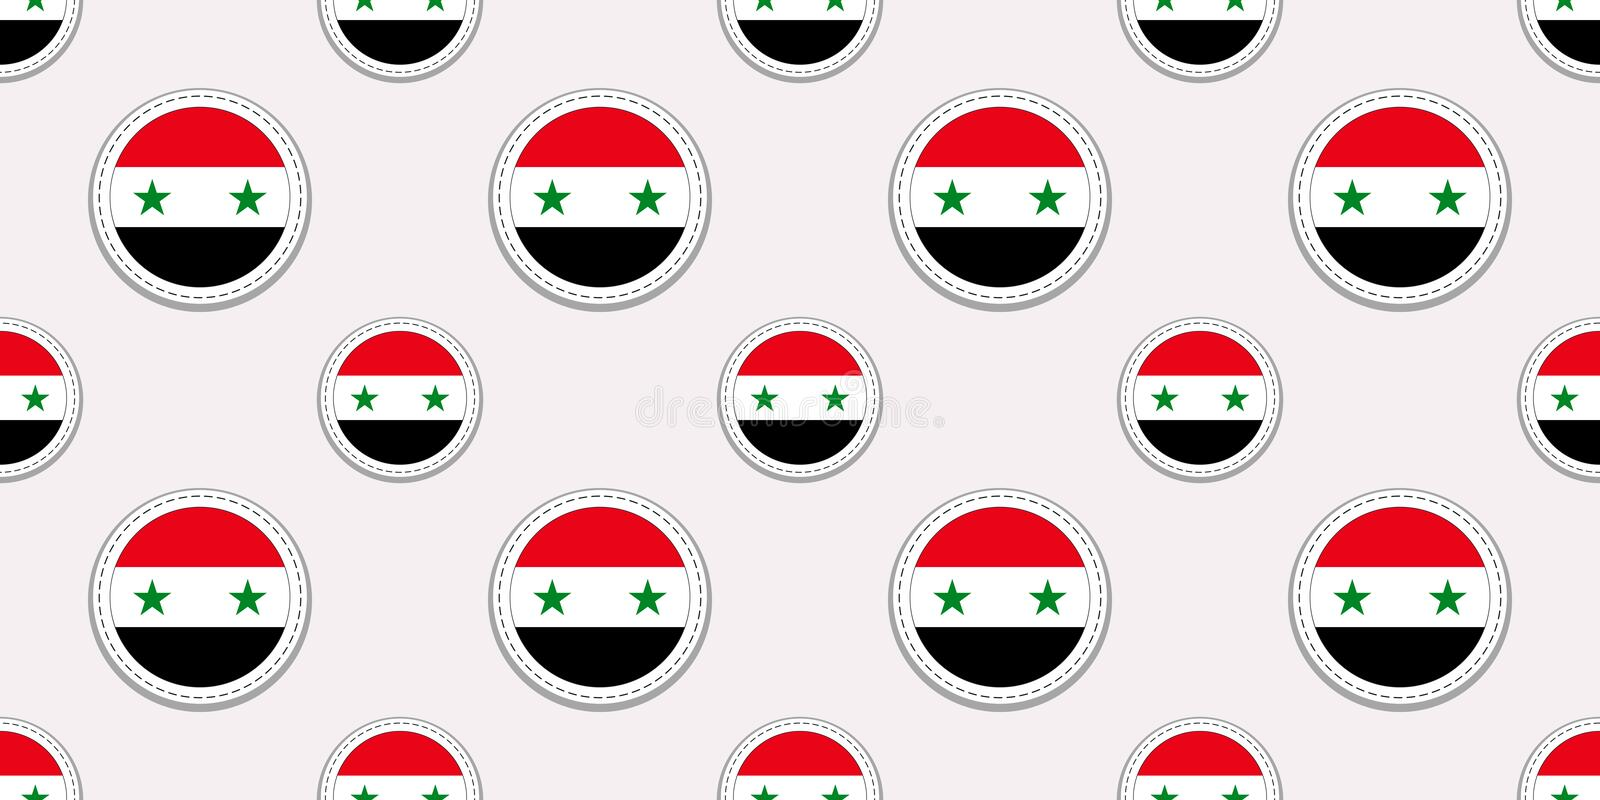 Syria round flag seamless pattern. Syrian background. Vector circle icons. Geometric symbols stickers. Texture for vector illustration